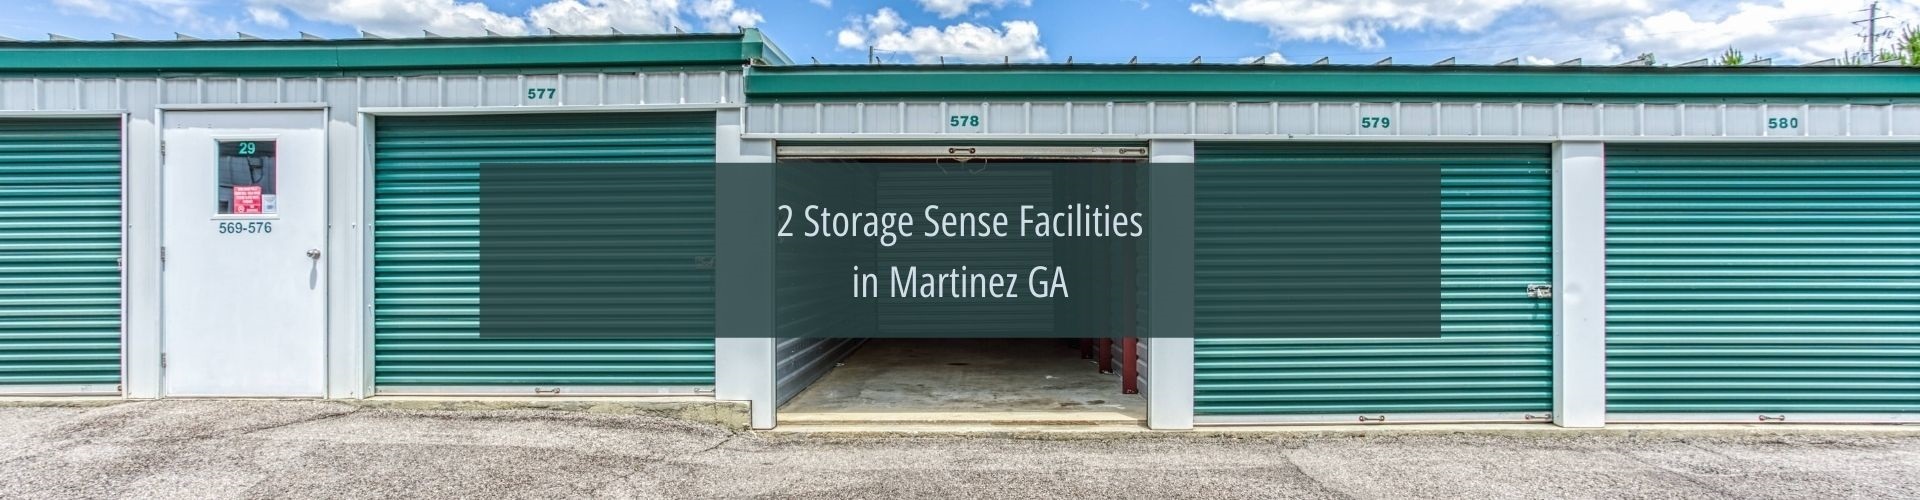 storage facilities Martinez GA